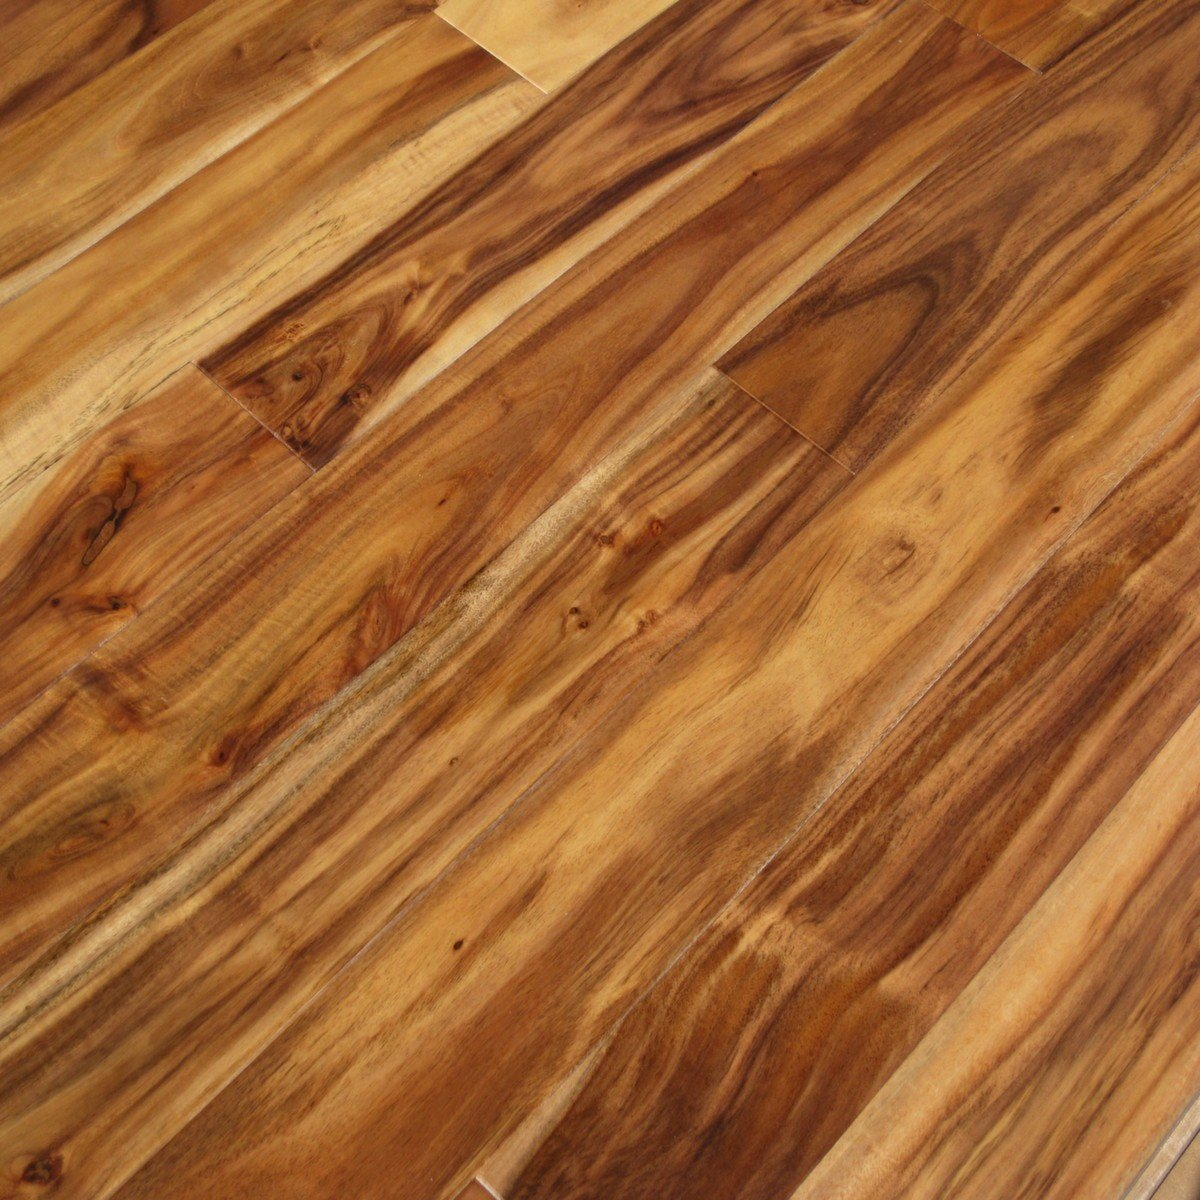 Acacia Natural Hand Scraped (Sample)   Solid Hardwood Floor Aluminum Oxide    Wood Floor Coverings   Amazon.com